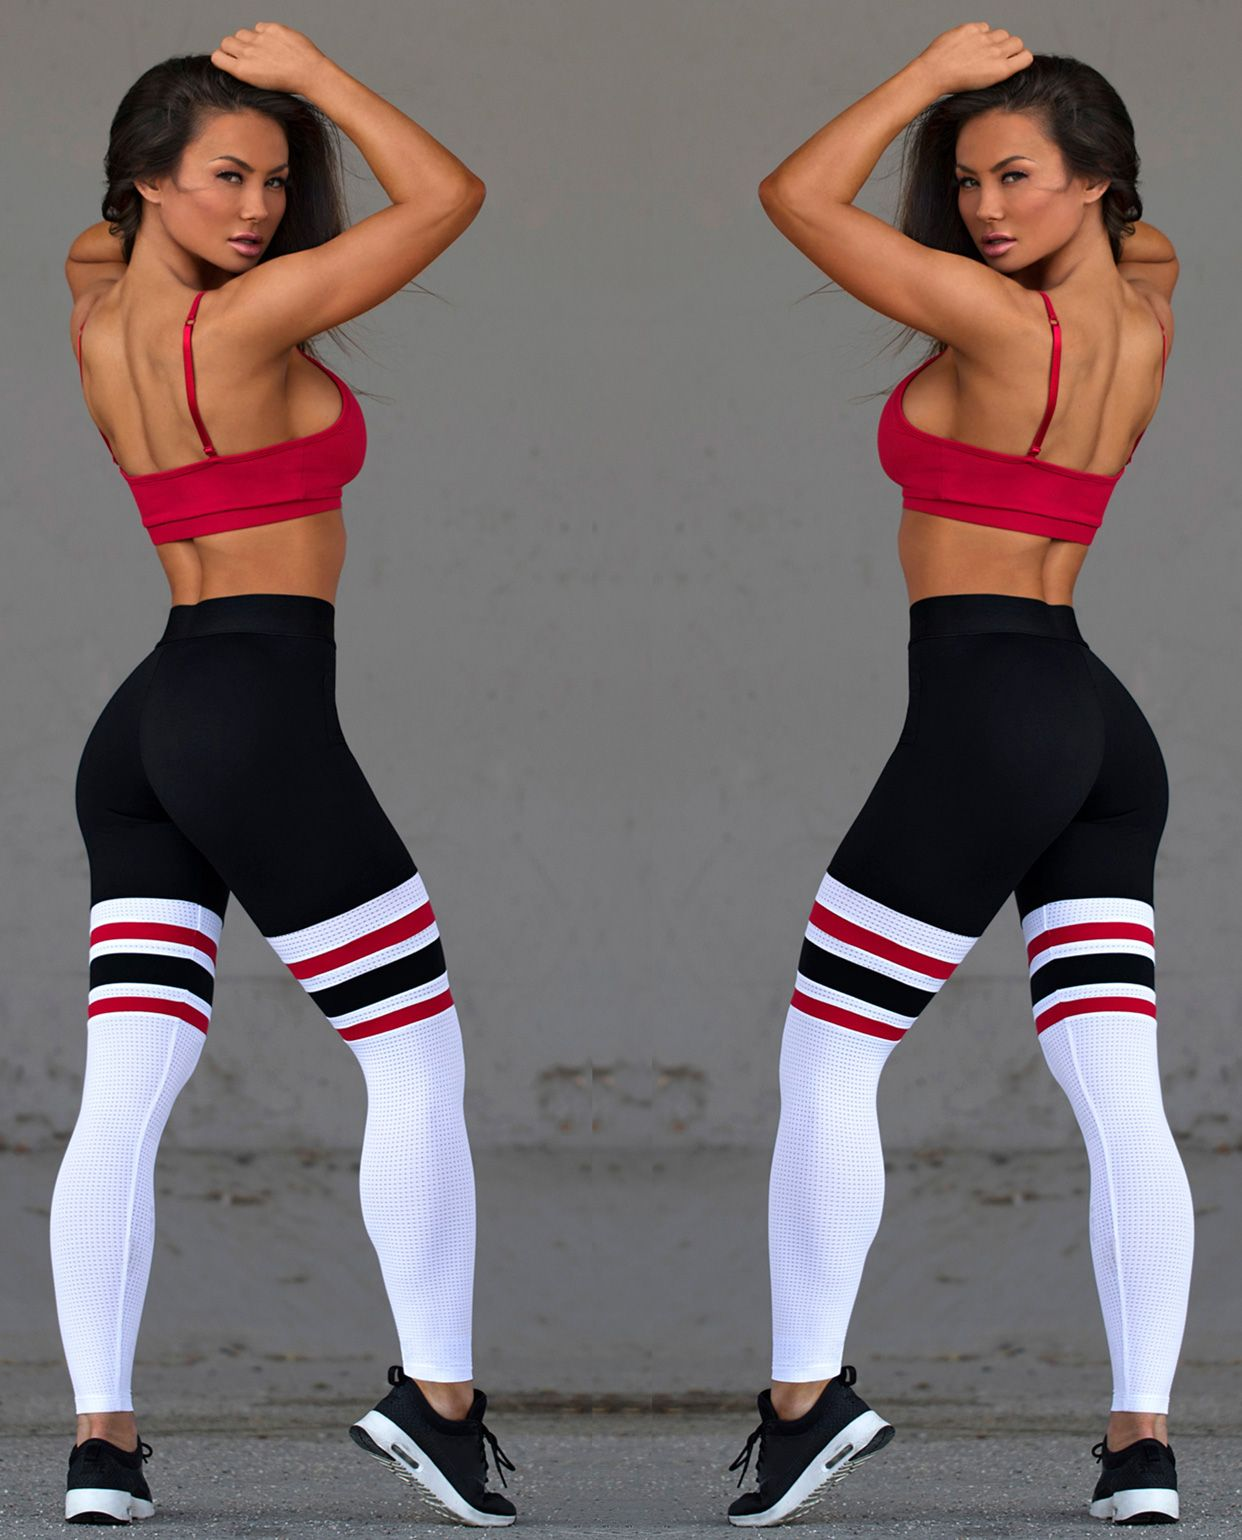 1f1b927d6865b9 Women's sports wear Cute Leggings, Yoga Leggings, Gym Gear, Workout Attire,  Workout